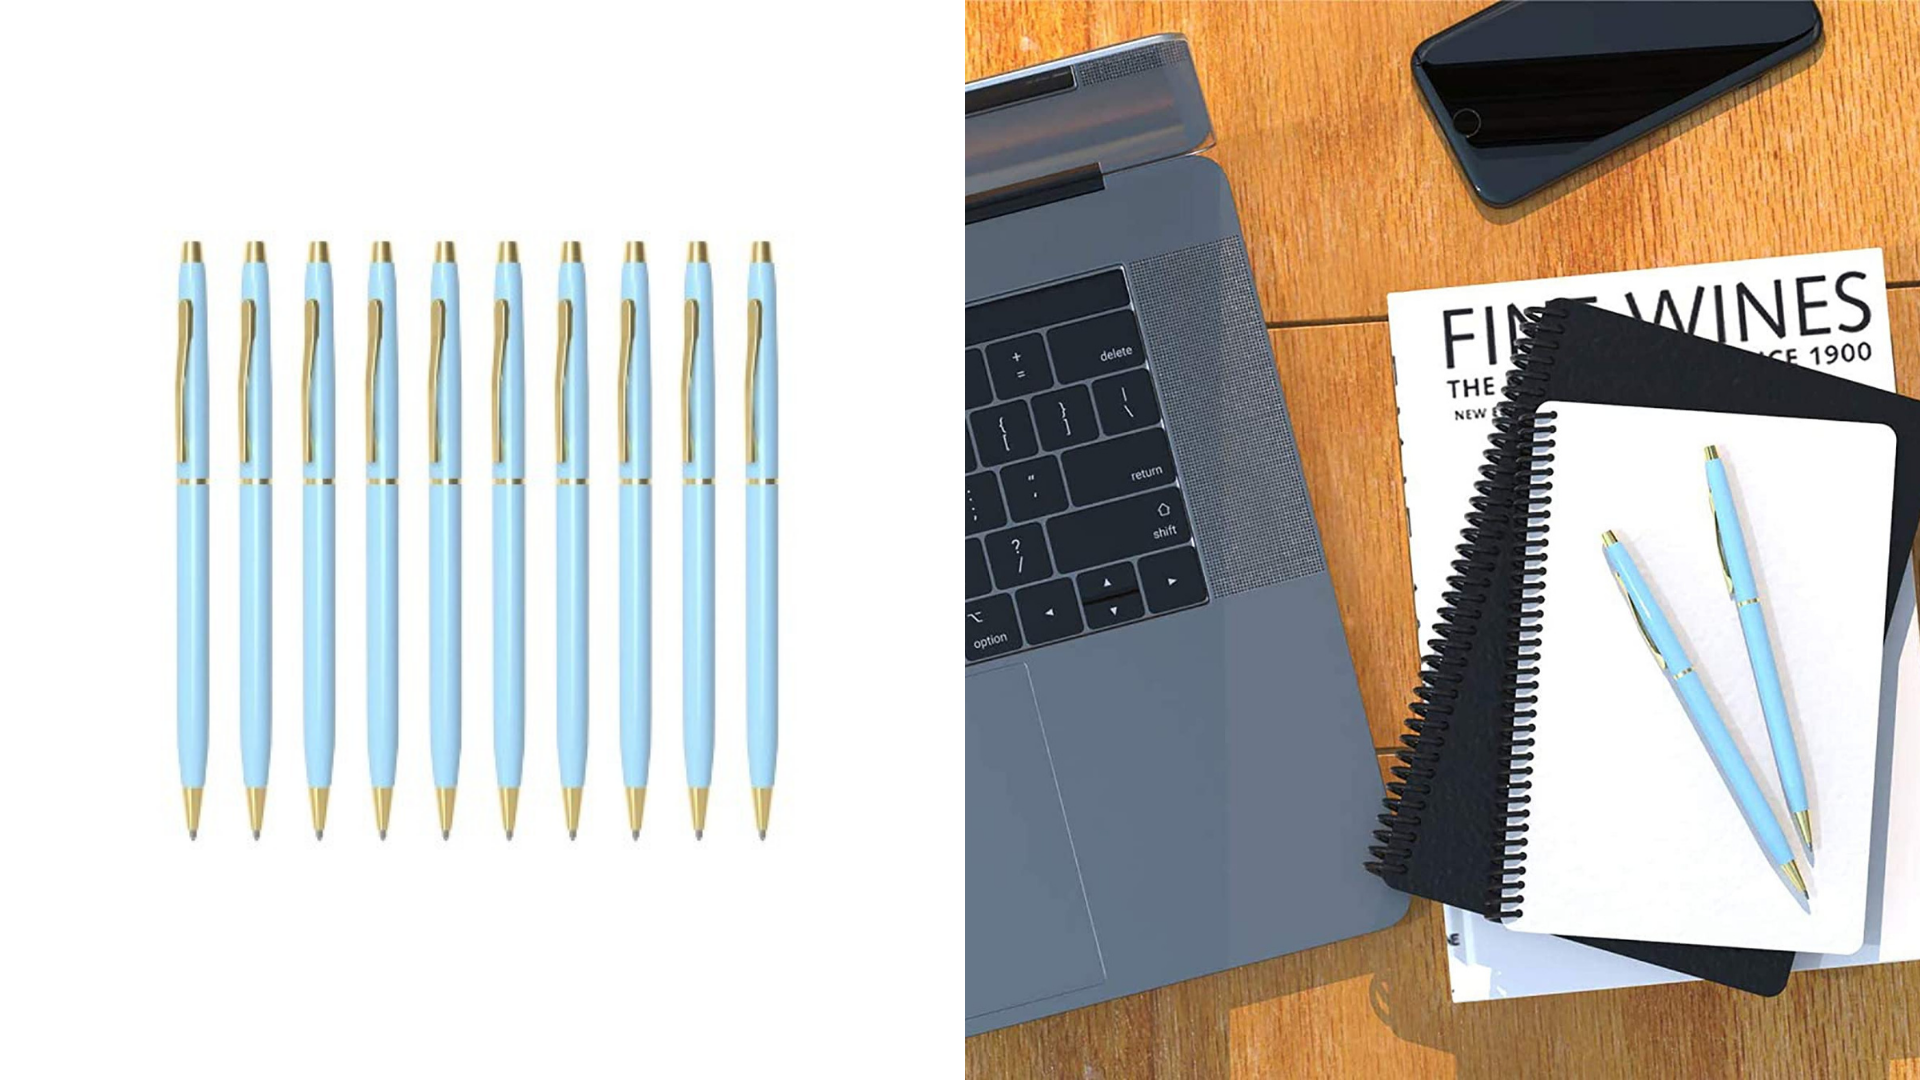 Two pens sit on top of a stack of notebooks.